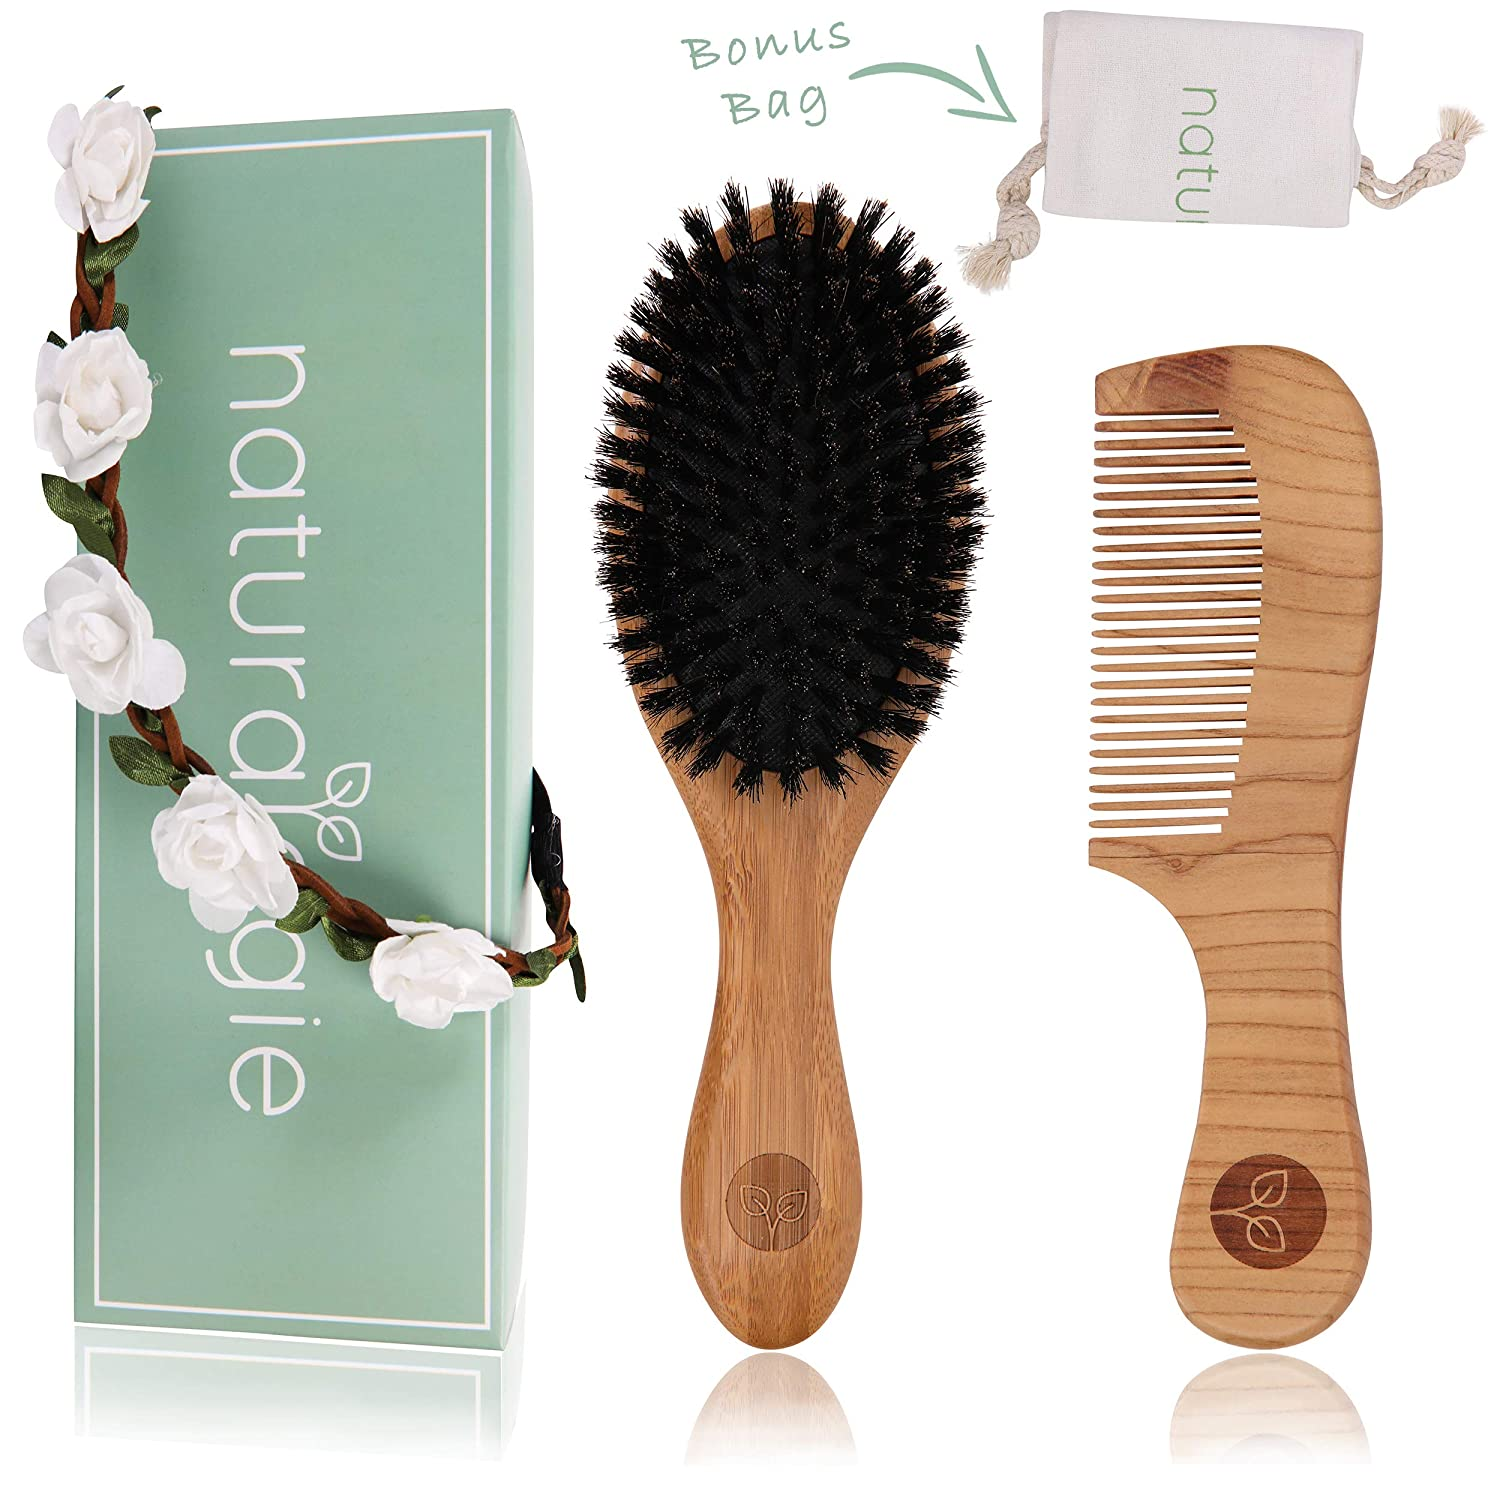 Boar Bristle Hair Brush Set by Naturalogie - Detangling Brush for Women, Kids, and Men. Includes Wooden Comb that Restores Shine and Texture To Your Hair